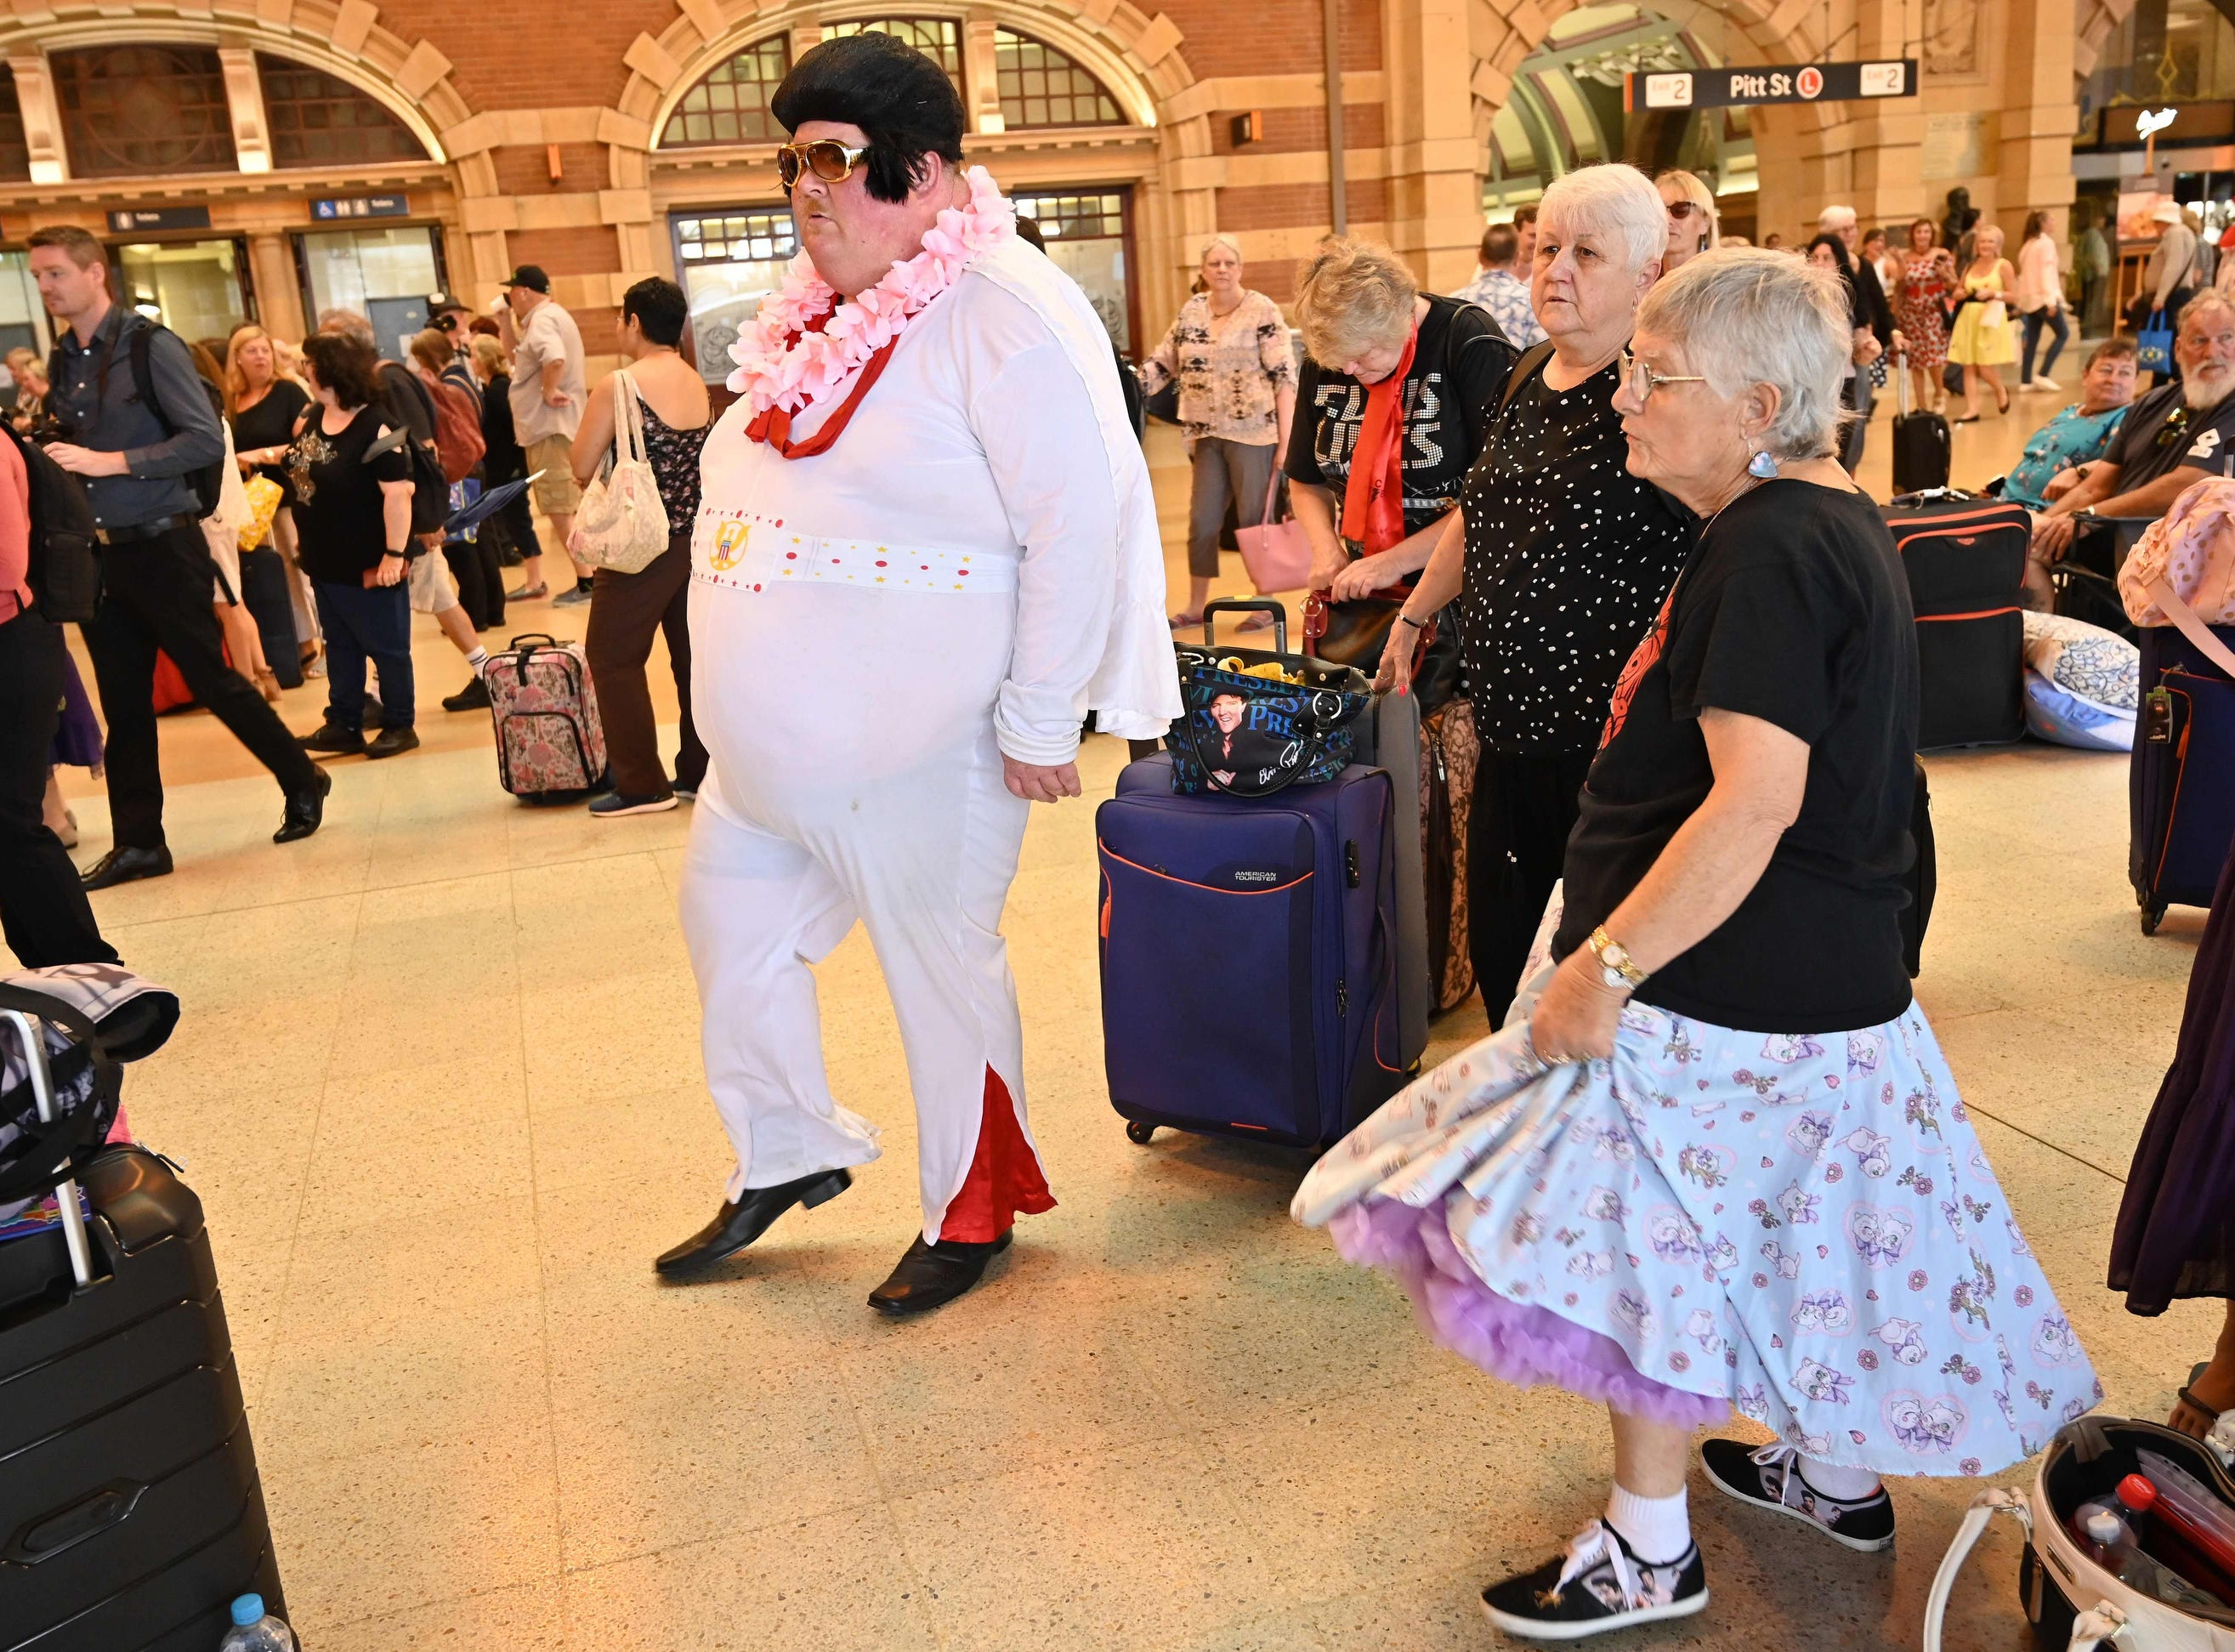 Break it down now! Elvis fans dance to Elvis songs at Central Station before boarding a train to to The Parkes Elvis Festival.